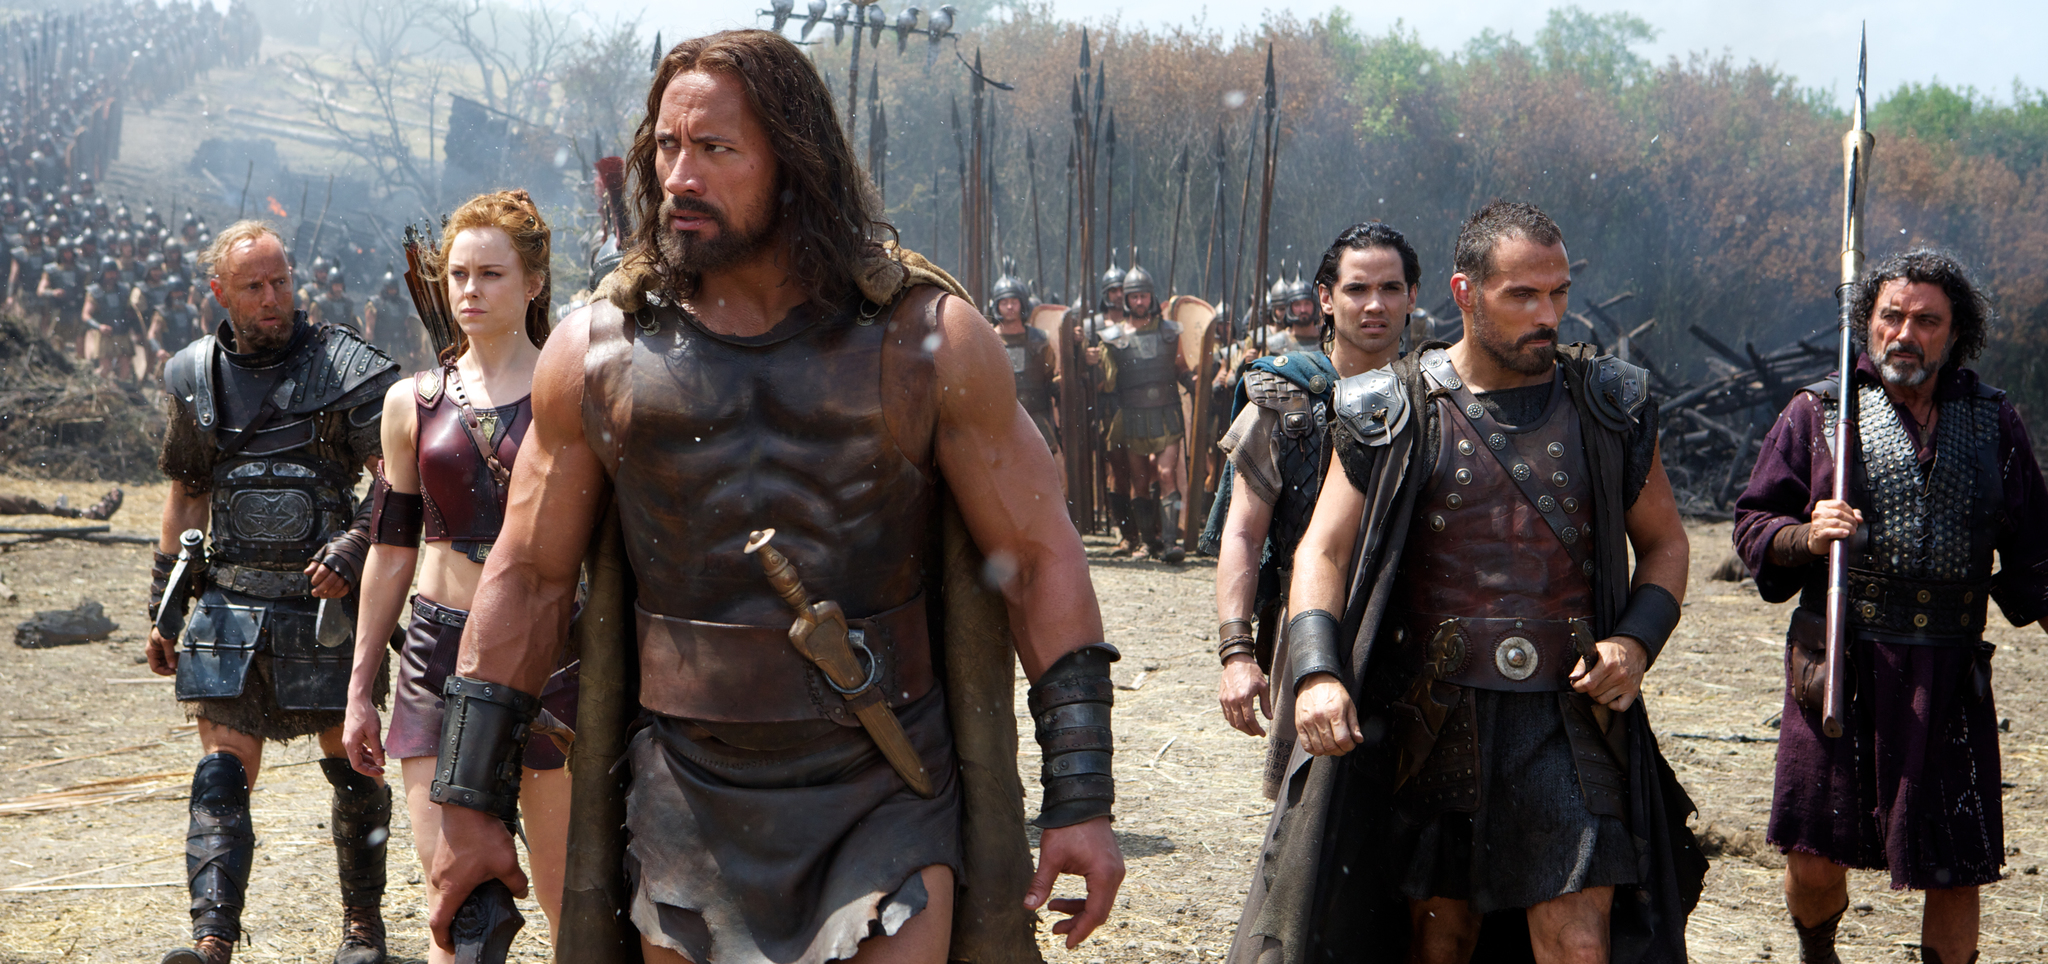 Rufus Sewell, Aksel Hennie, Dwayne Johnson, Ian McShane, Ingrid Bolsø Berdal, and Reece Ritchie in Hercules (2014)